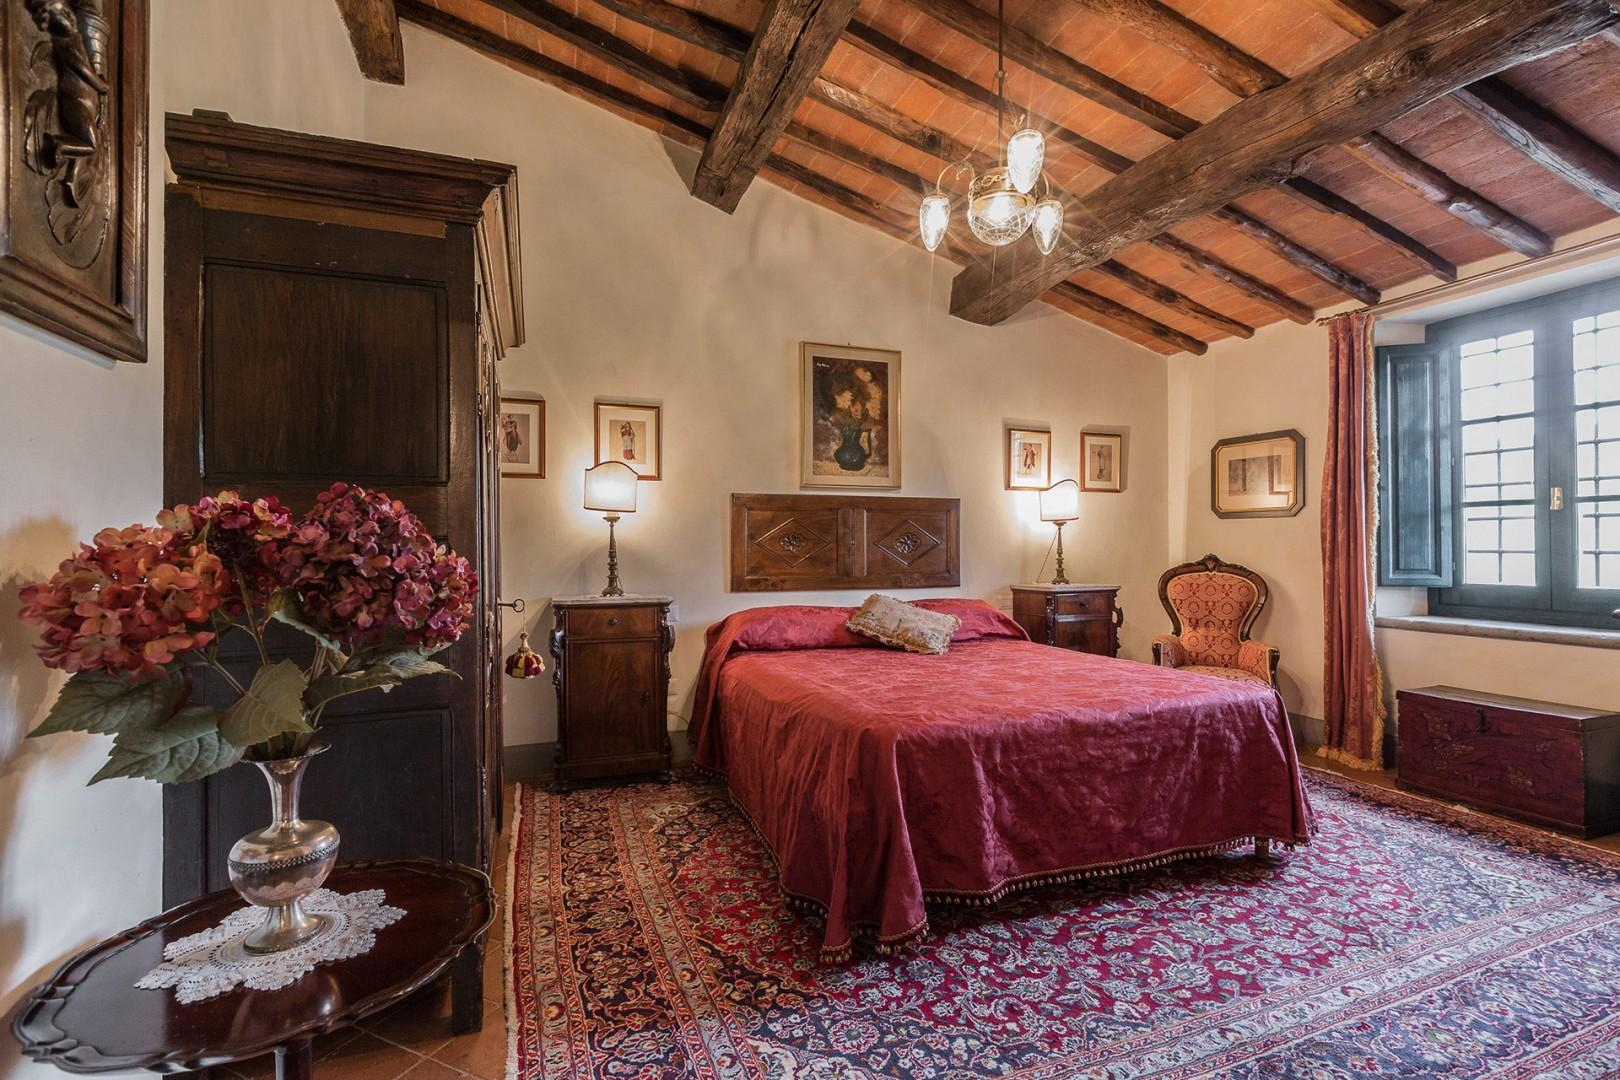 Bedroom 2 with beautiful antique furniture